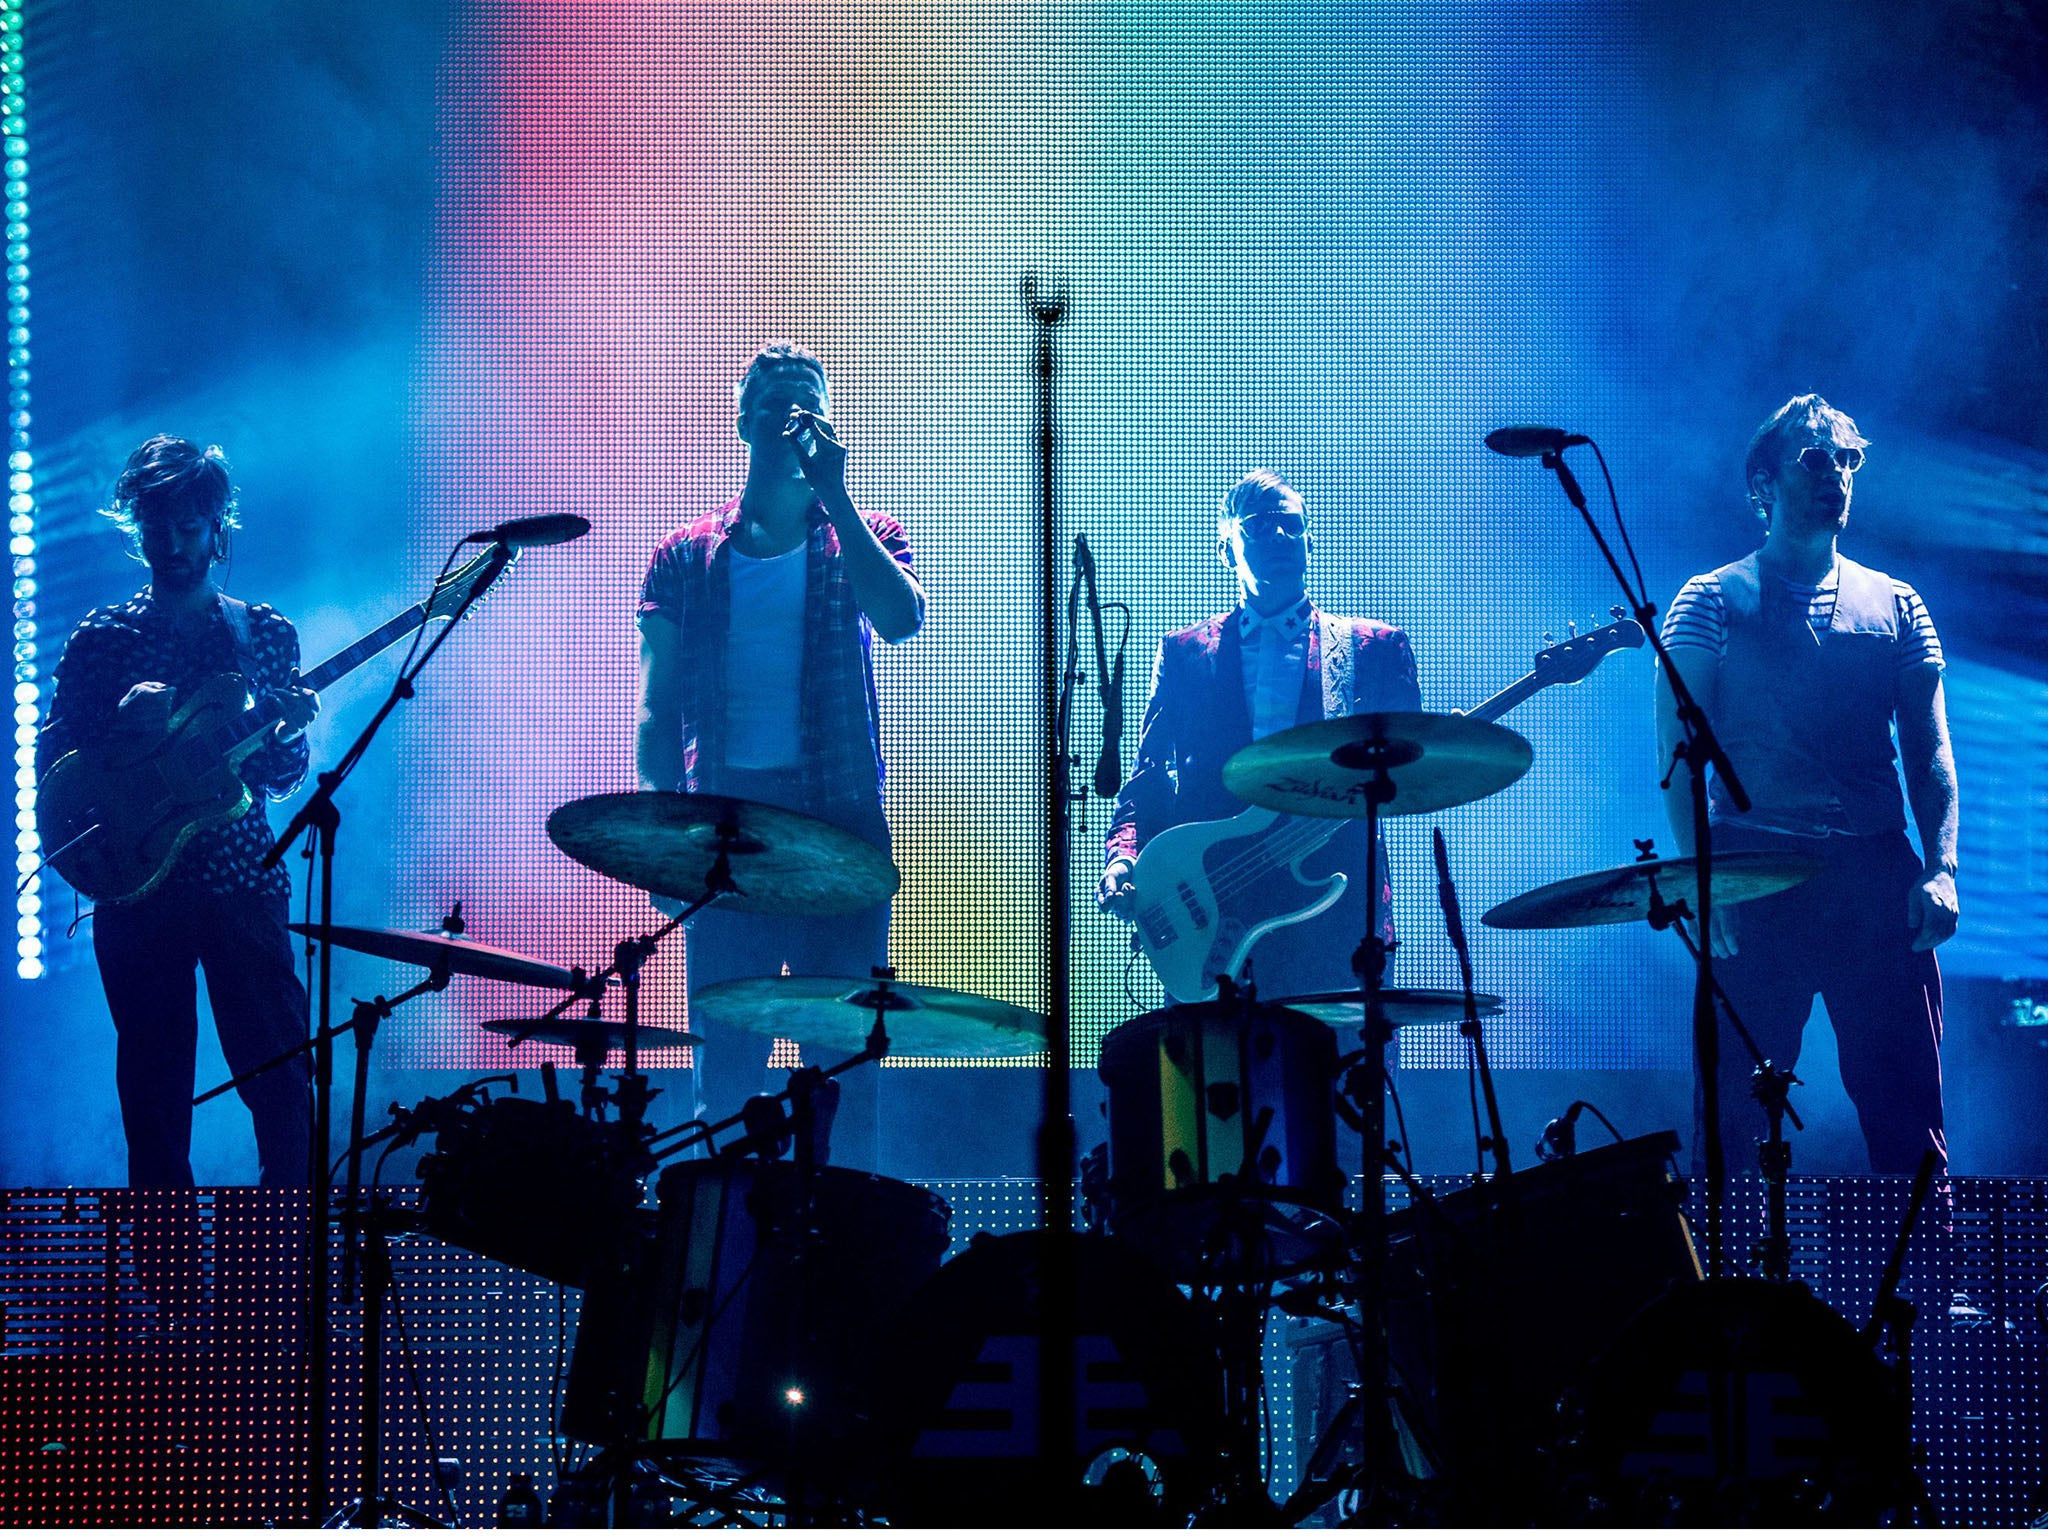 imagine dragons dating The last time imagine dragons came to hong kong, the tour that brought them ' radioactive' hitmakers imagine dragons raise their game.